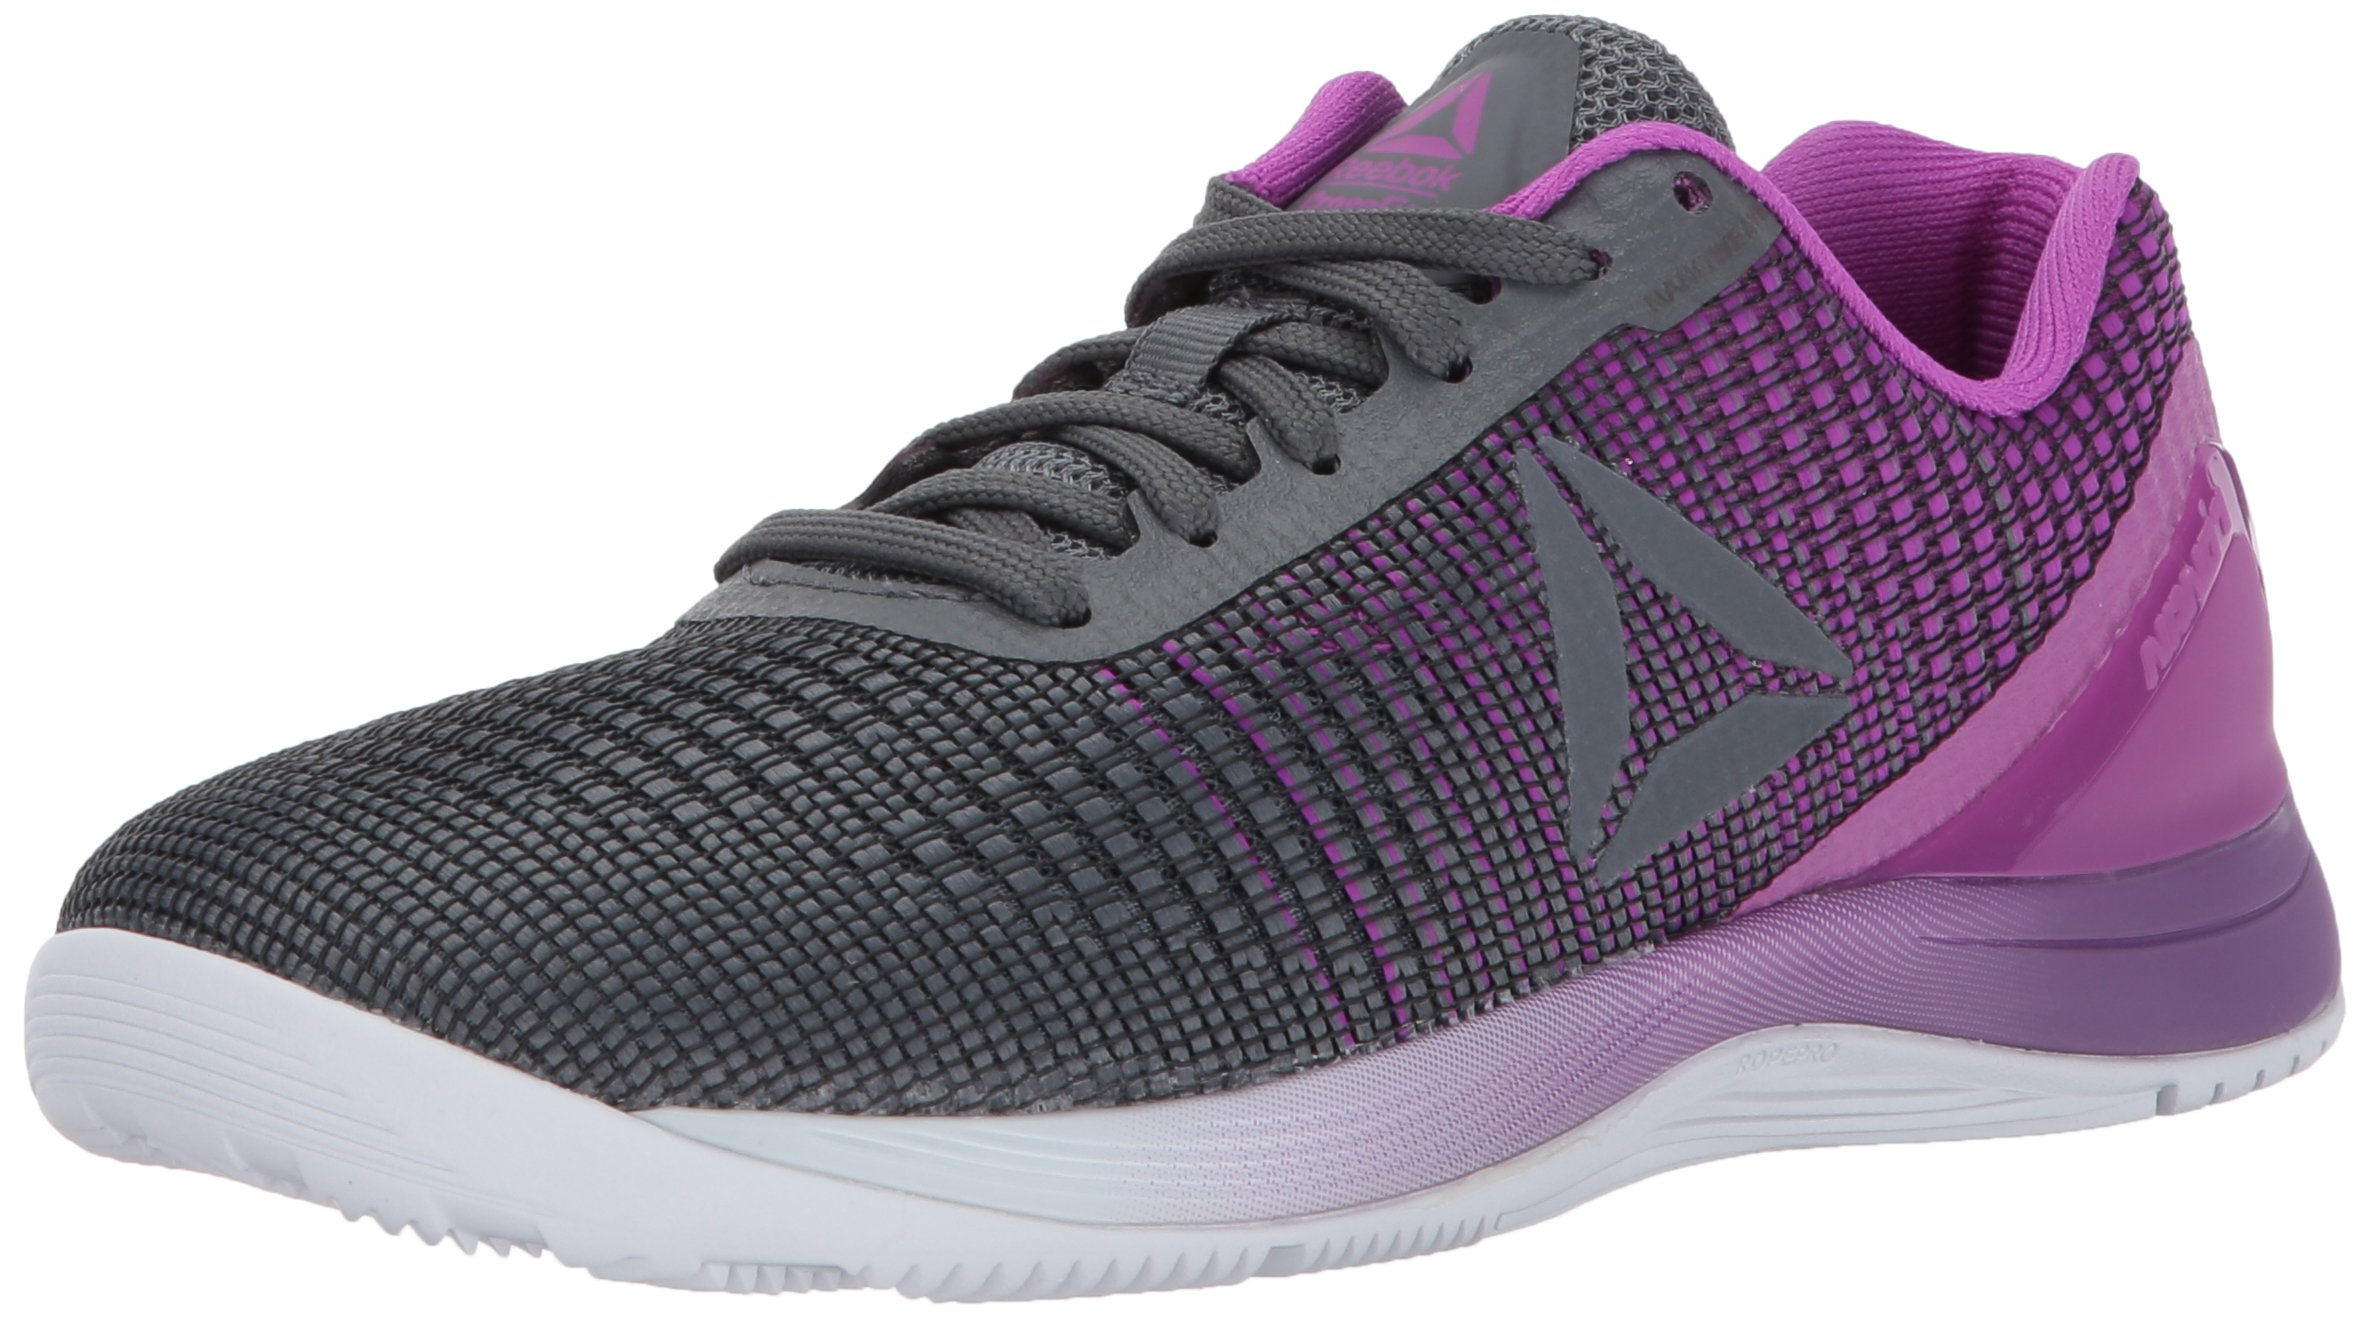 Reebok Women's Crossfit Nano 7.0 Track Shoe, Alloy/Vicious Violet/White, 10 M US